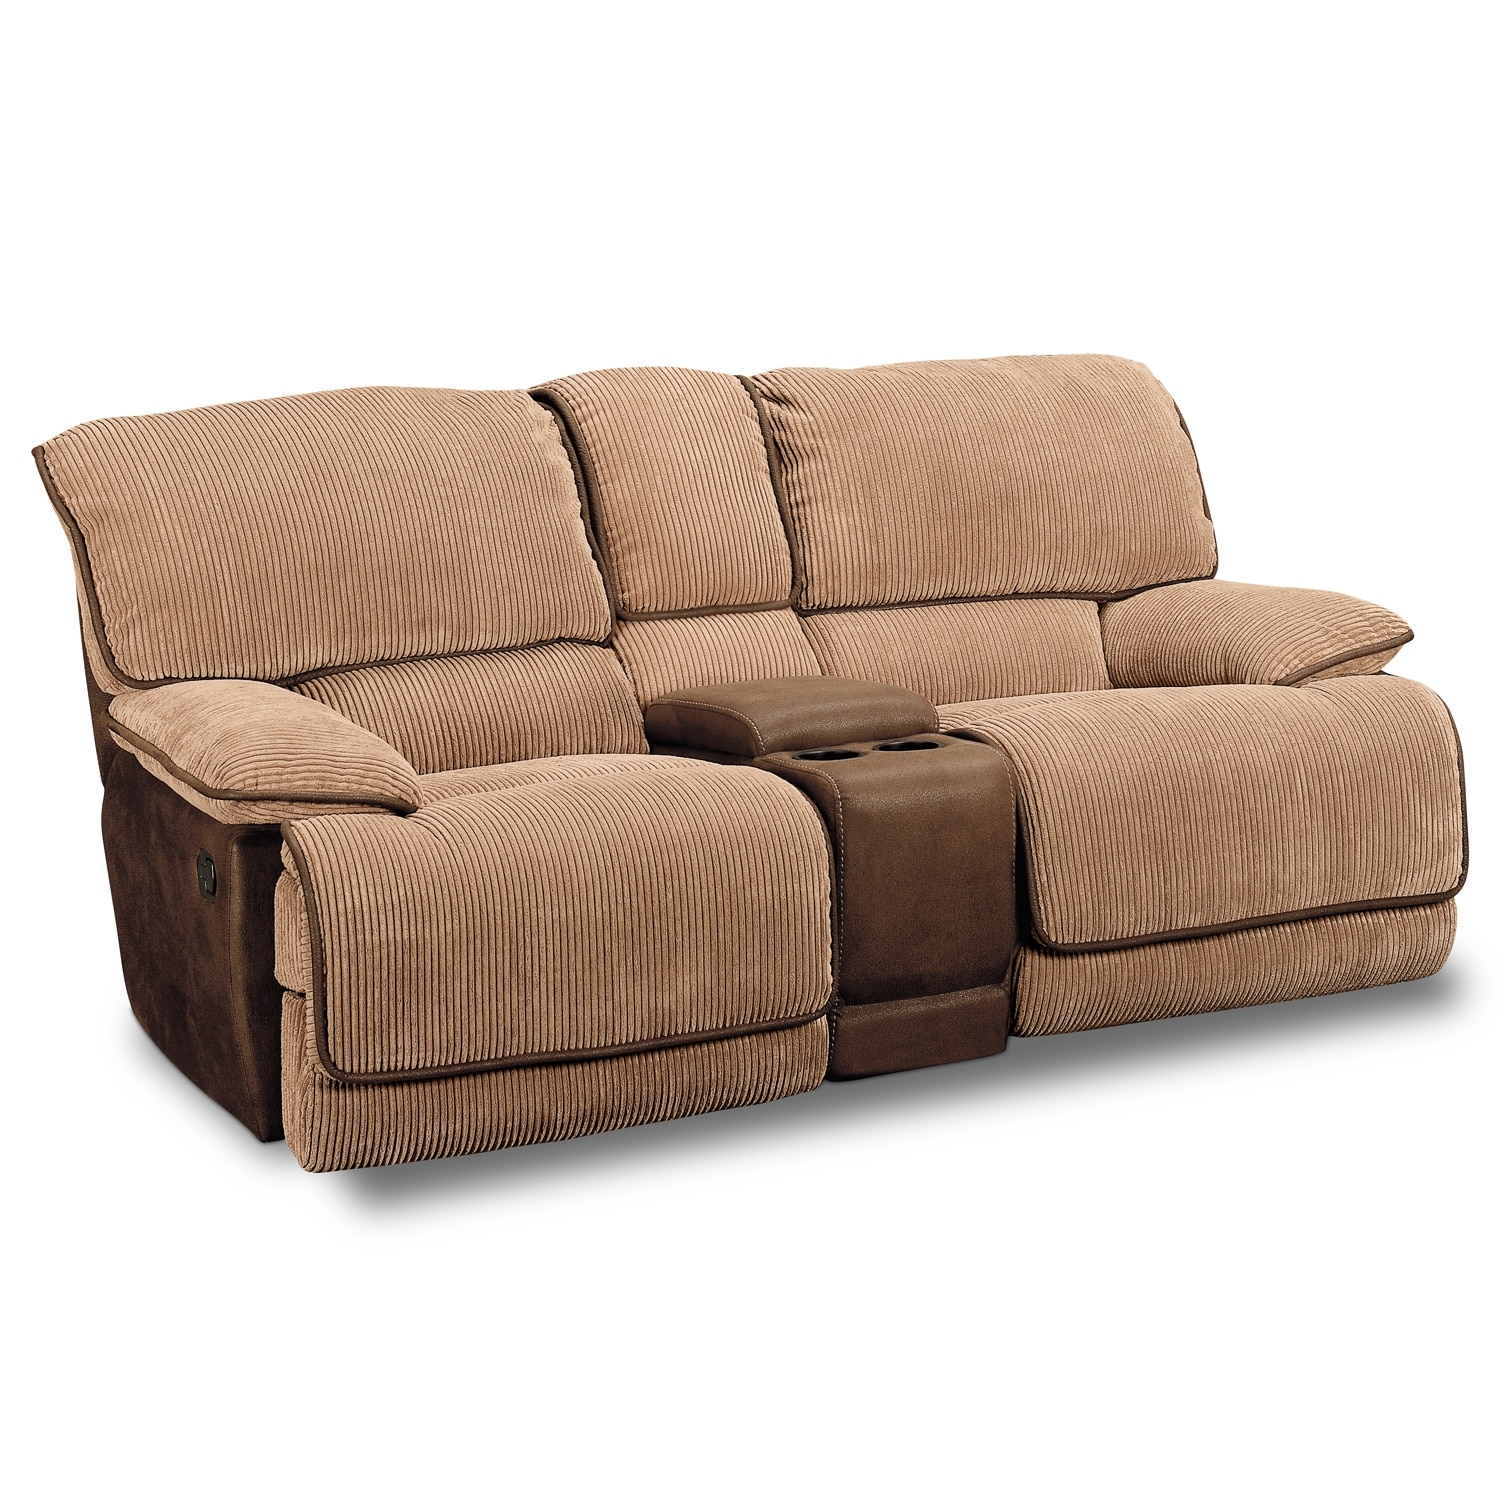 Laguna Reclining Sofa And Gliding Reclining Loveseat Set Camel American Signature Furniture